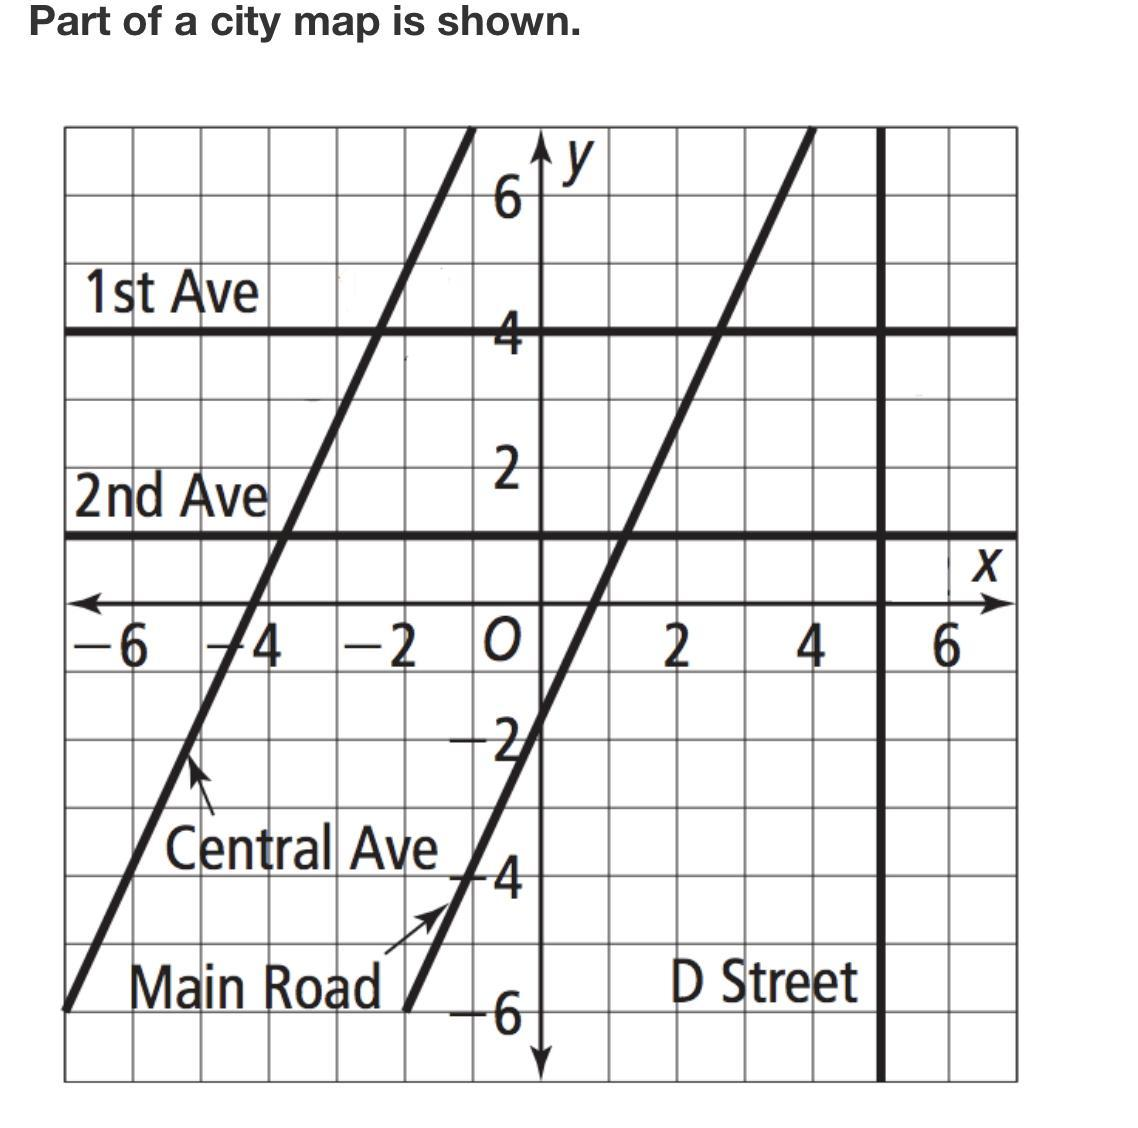 A City Planner Wants To Build A Road Parallel To 2nd Ave